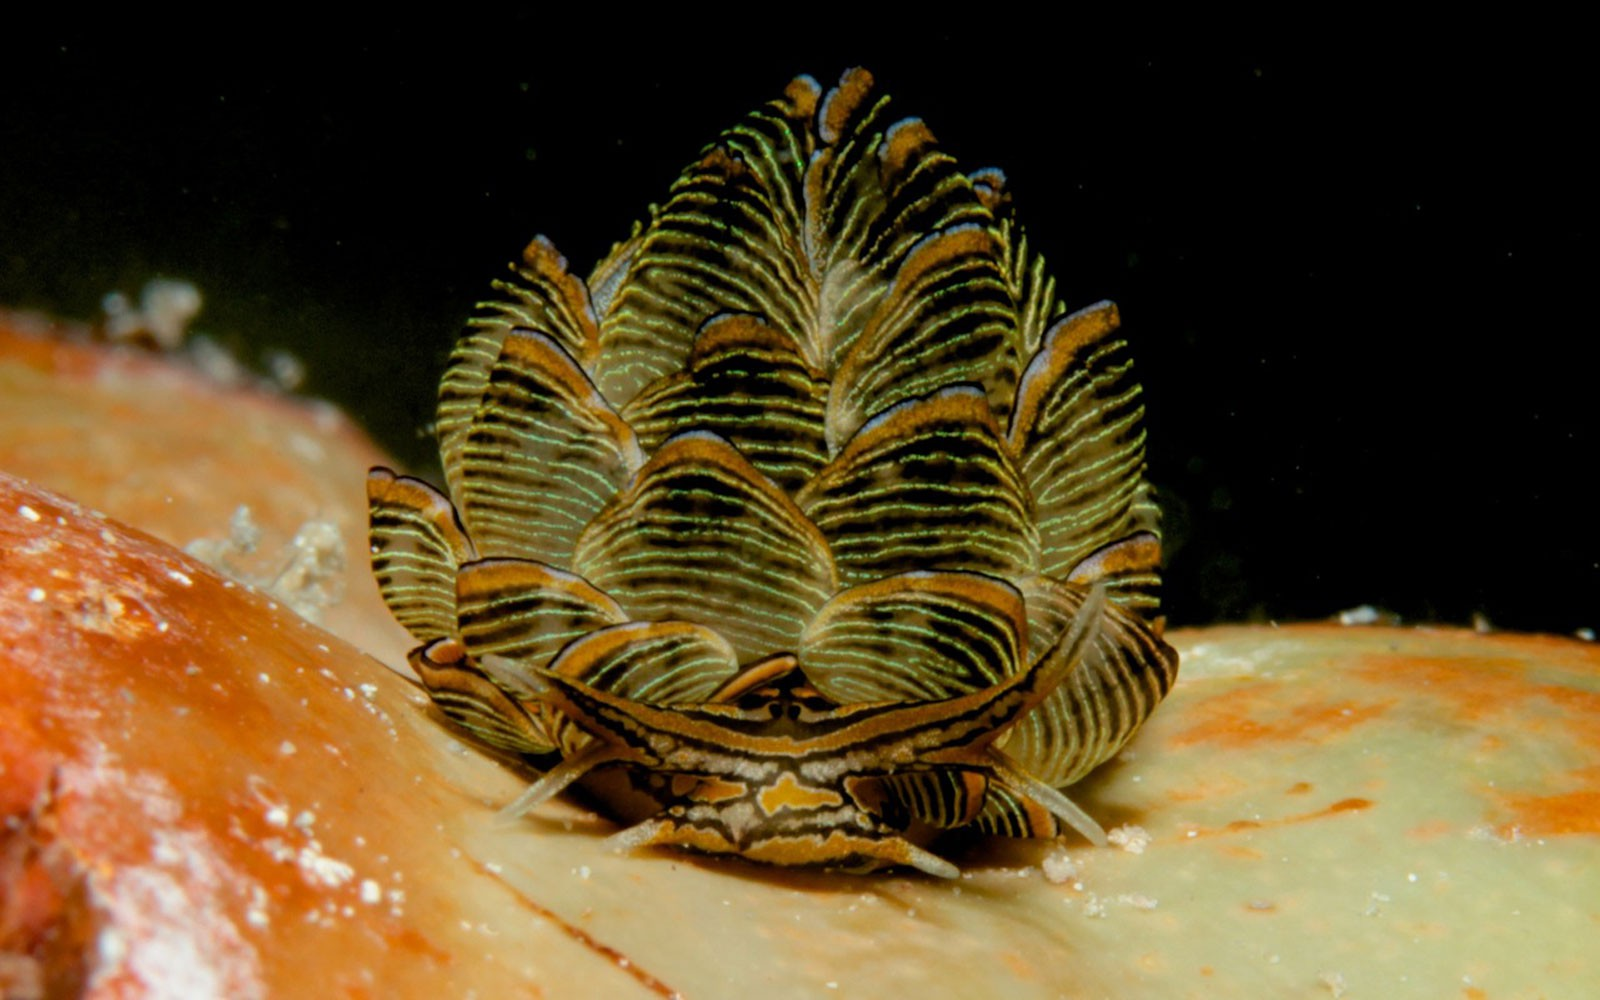 Nudibranch: Cyerce nigra, photo: Kirsten Goerner (May 2013)